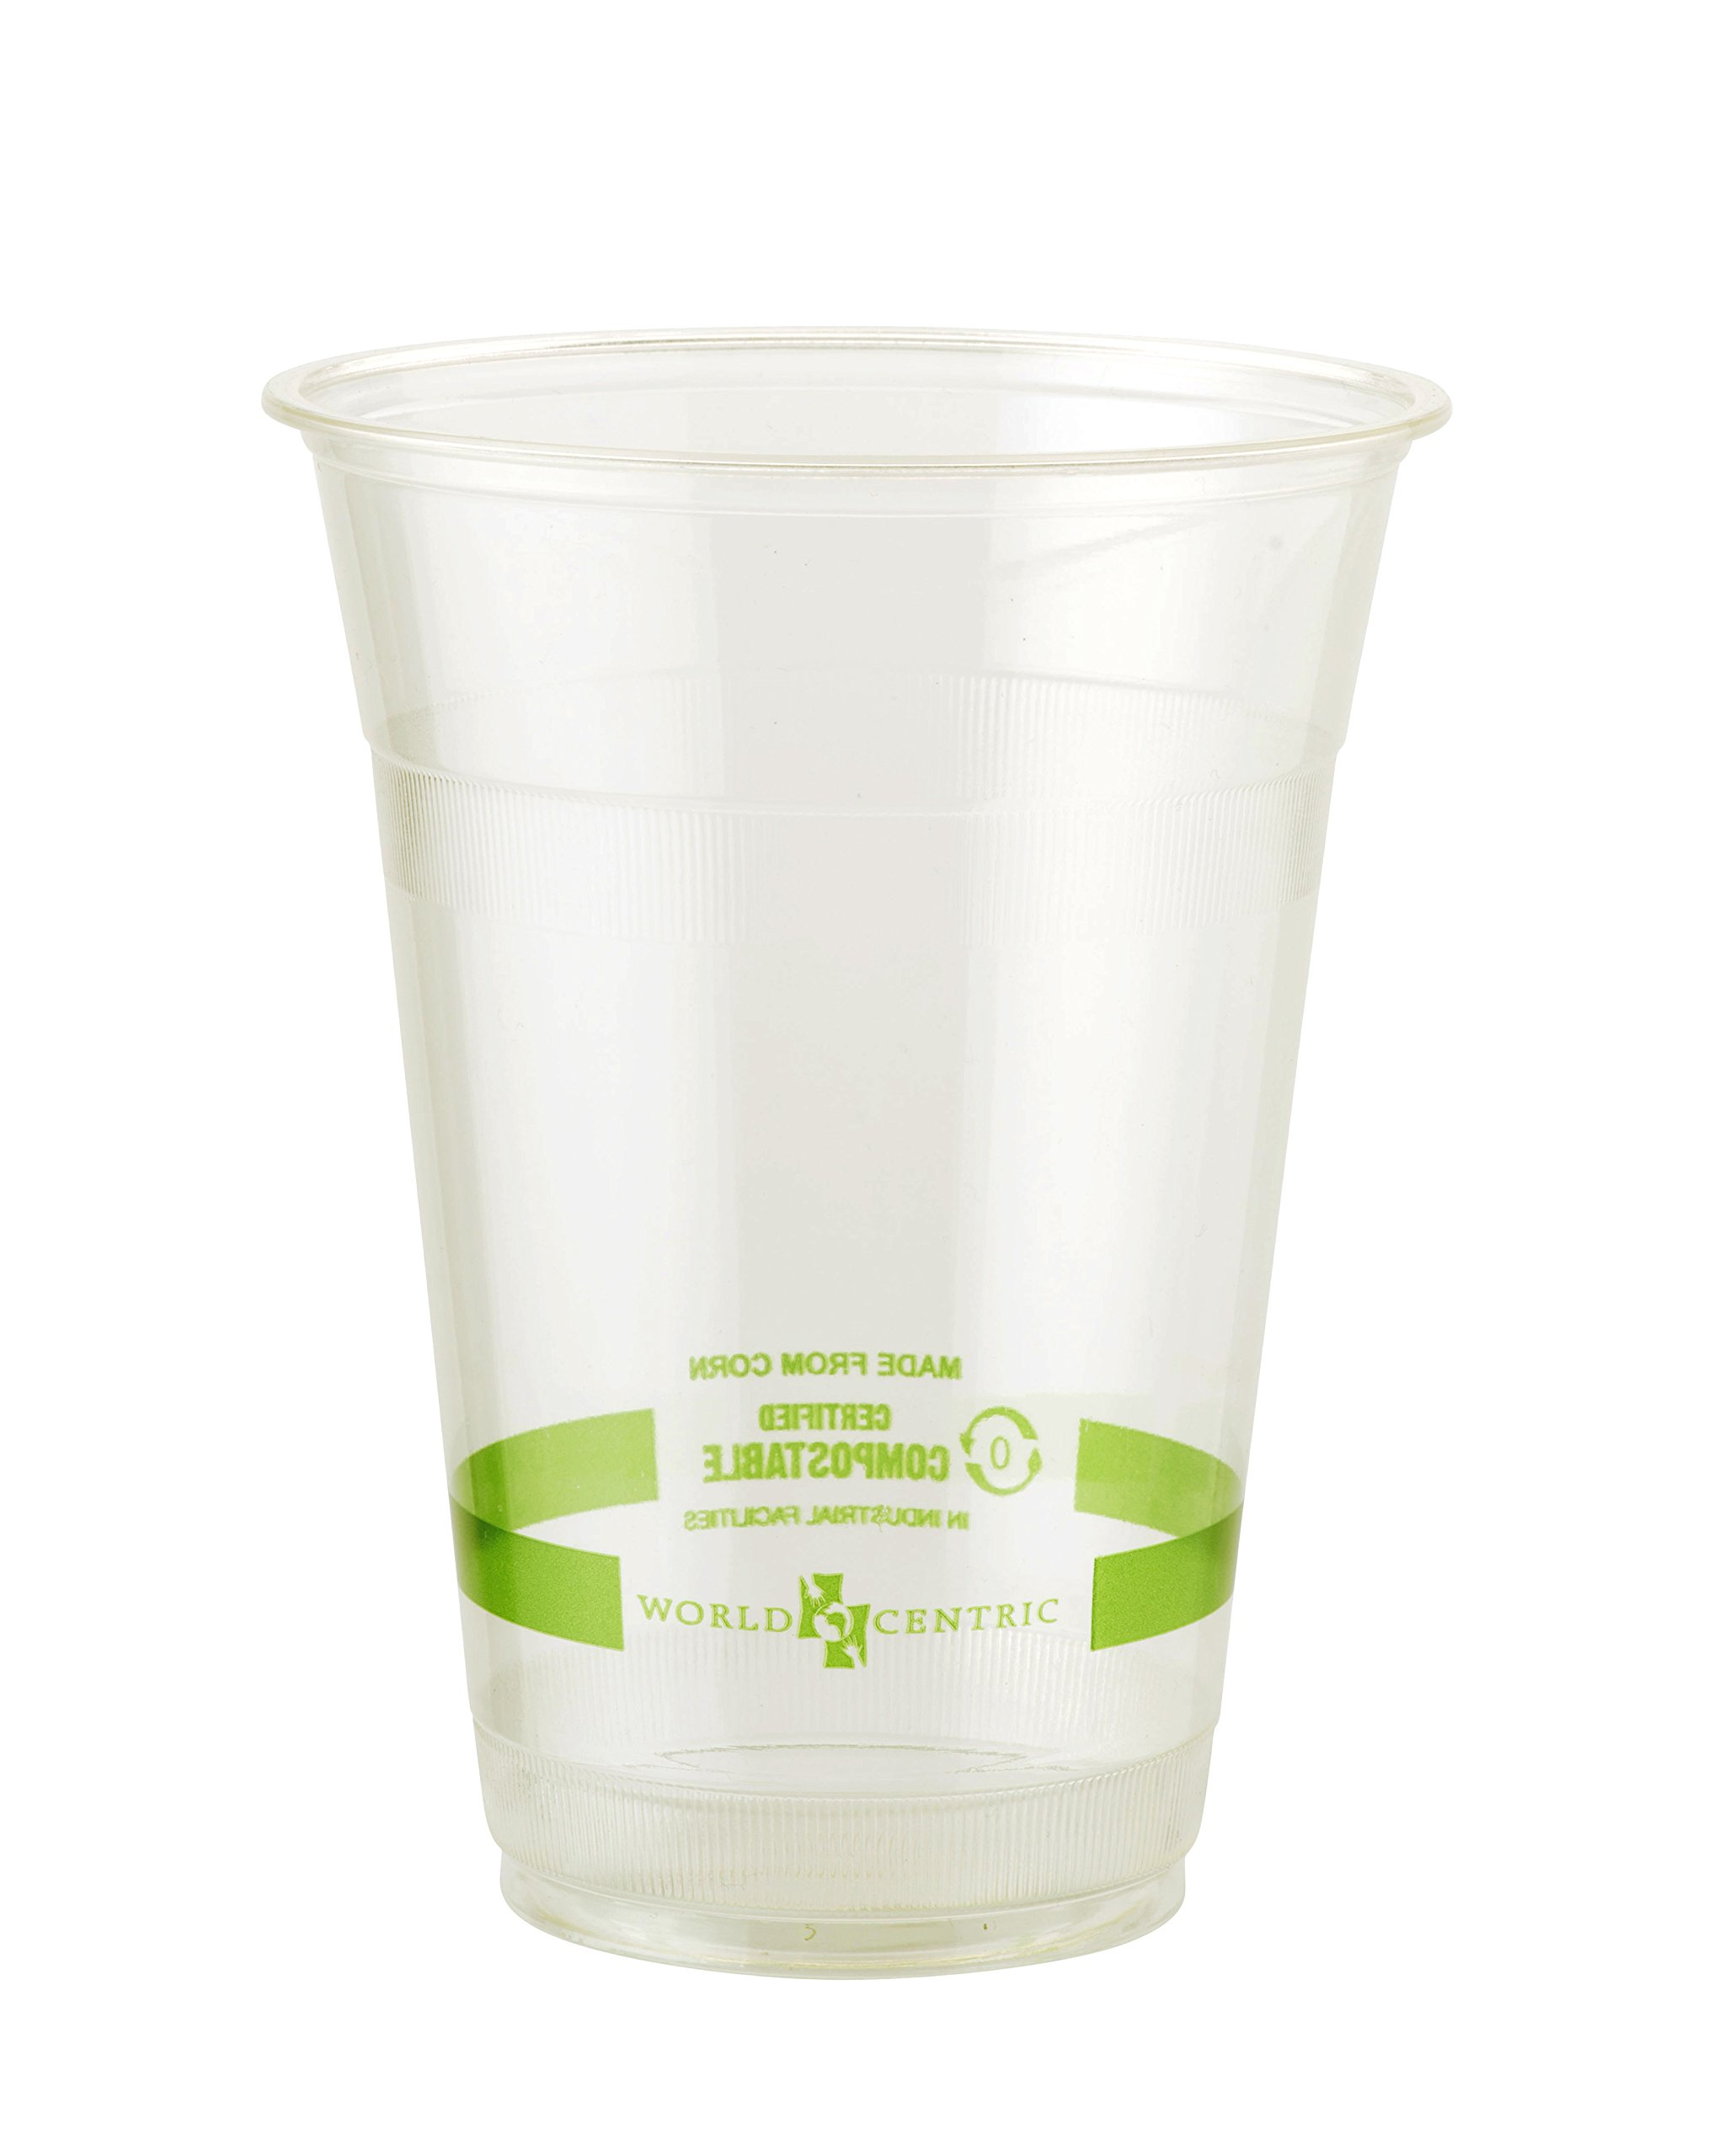 World Centric 100% Compostable Cups by World Centric, Made from Ingeo PLA, for Cold Drinks, Clear, 16 oz (Pack of 1000) by World Centric